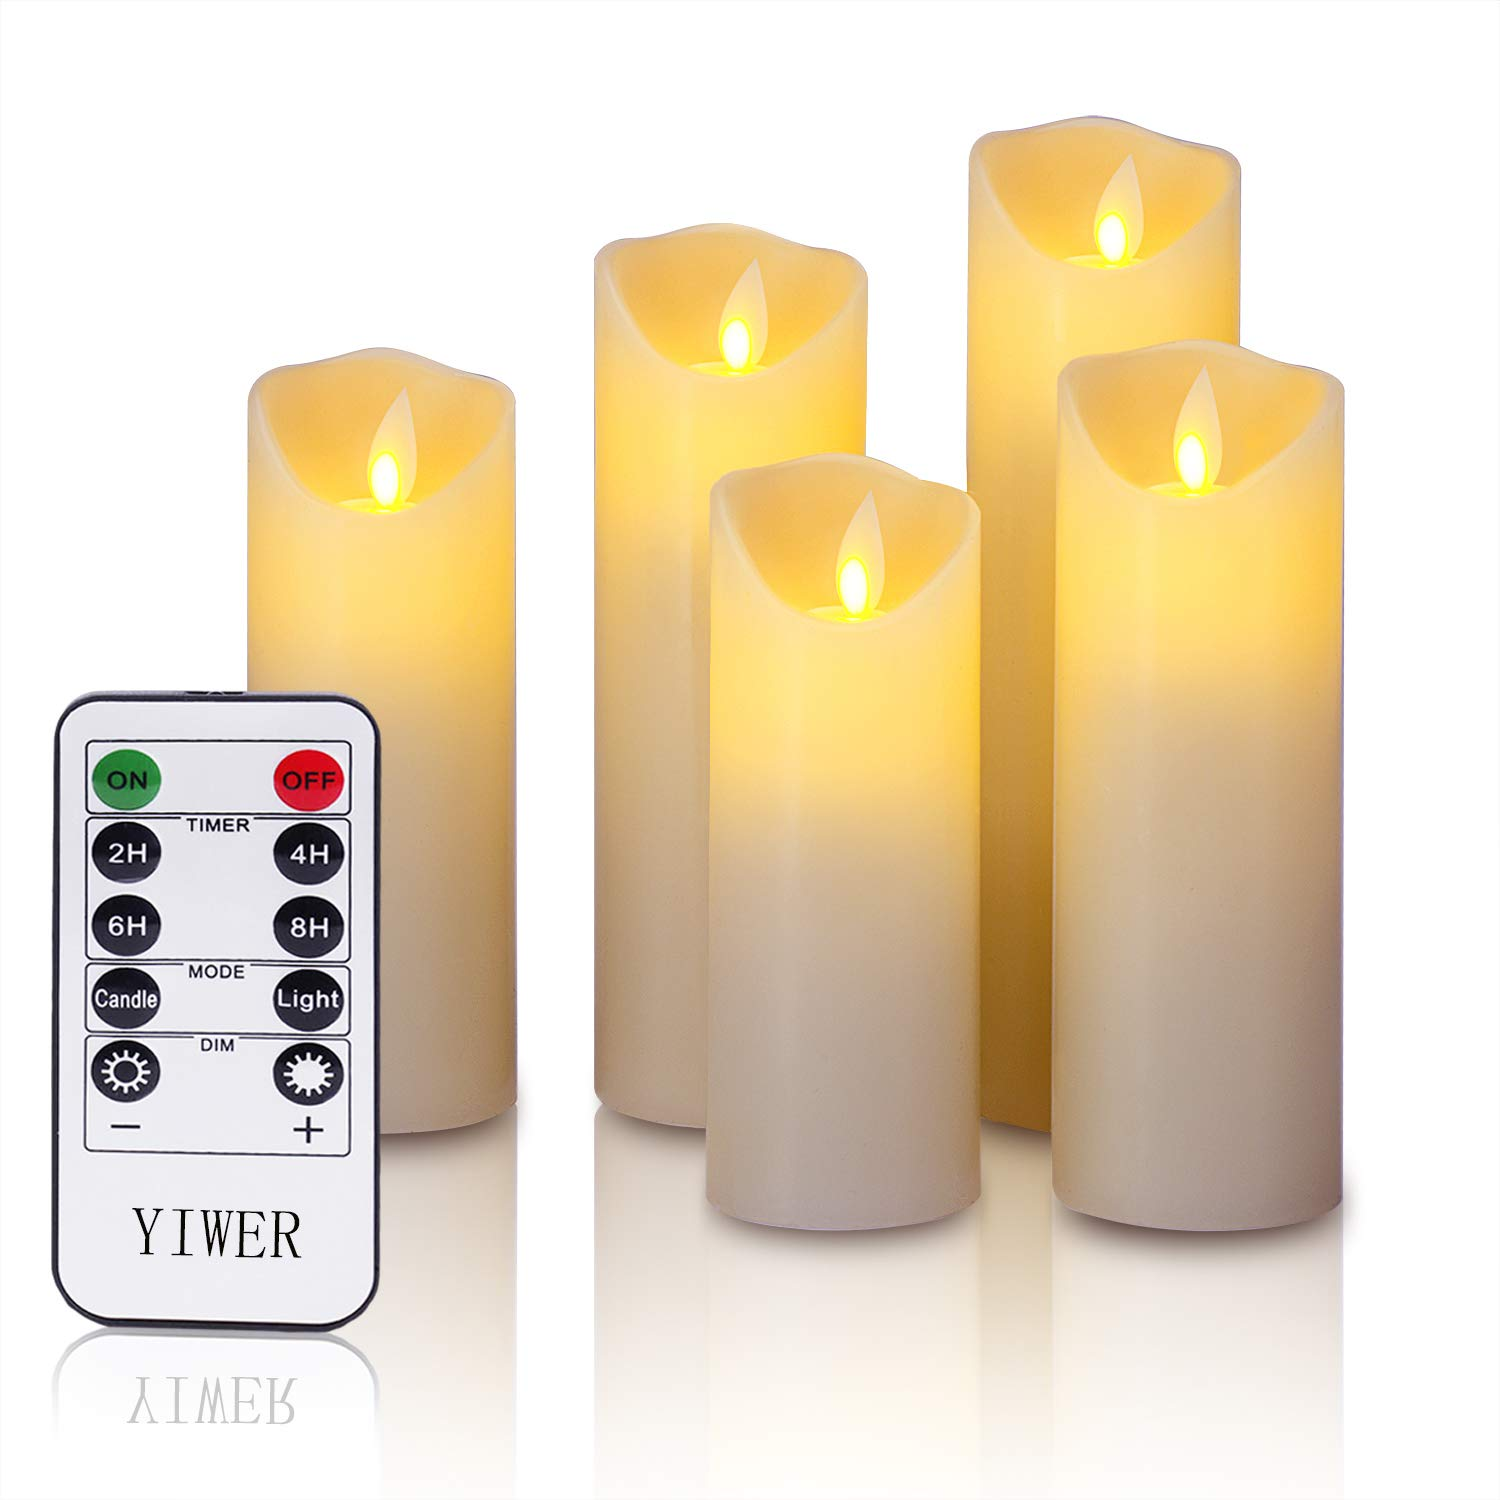 LED candles 5.5 6 6.5 7 8Set of 5 Real Wax Battery Flameless Candles Include Realistic Dancing LED Flames and 10 key Remote Control with 2 4 6 8 hours Timer Function 300 Hours YIWER 5x1 Ivory